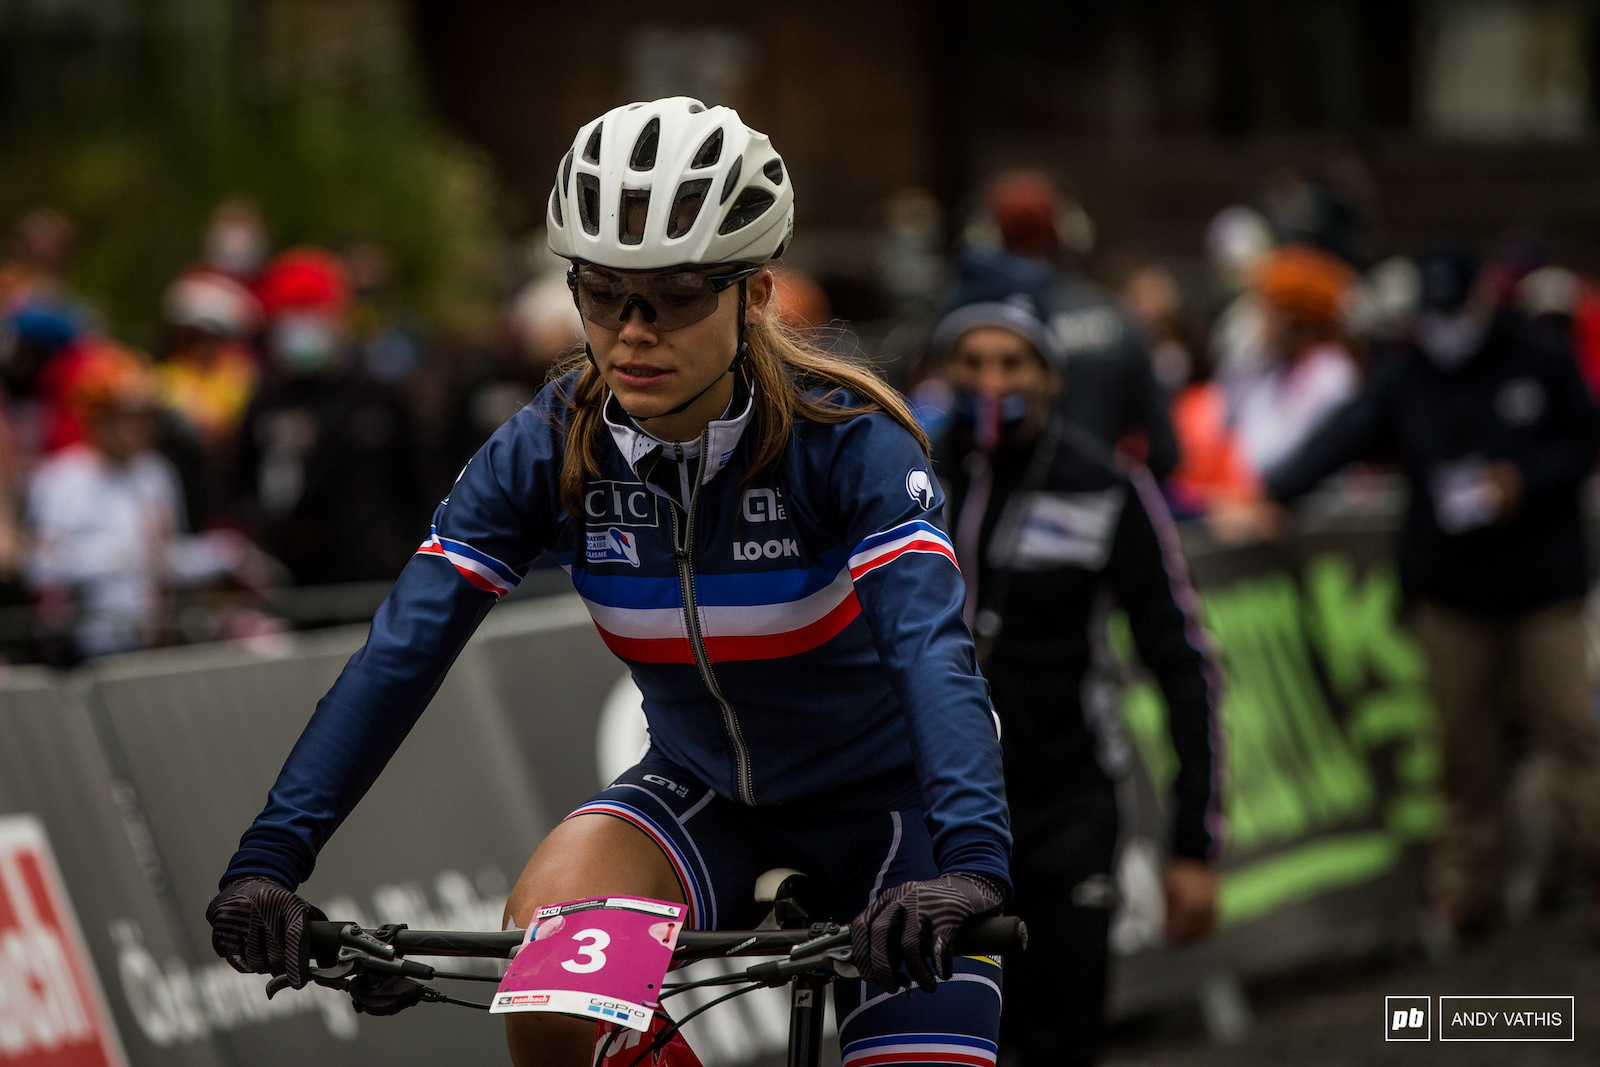 Already such a successful season for Loana Lecomte. Will she be able to tame this monster of a track